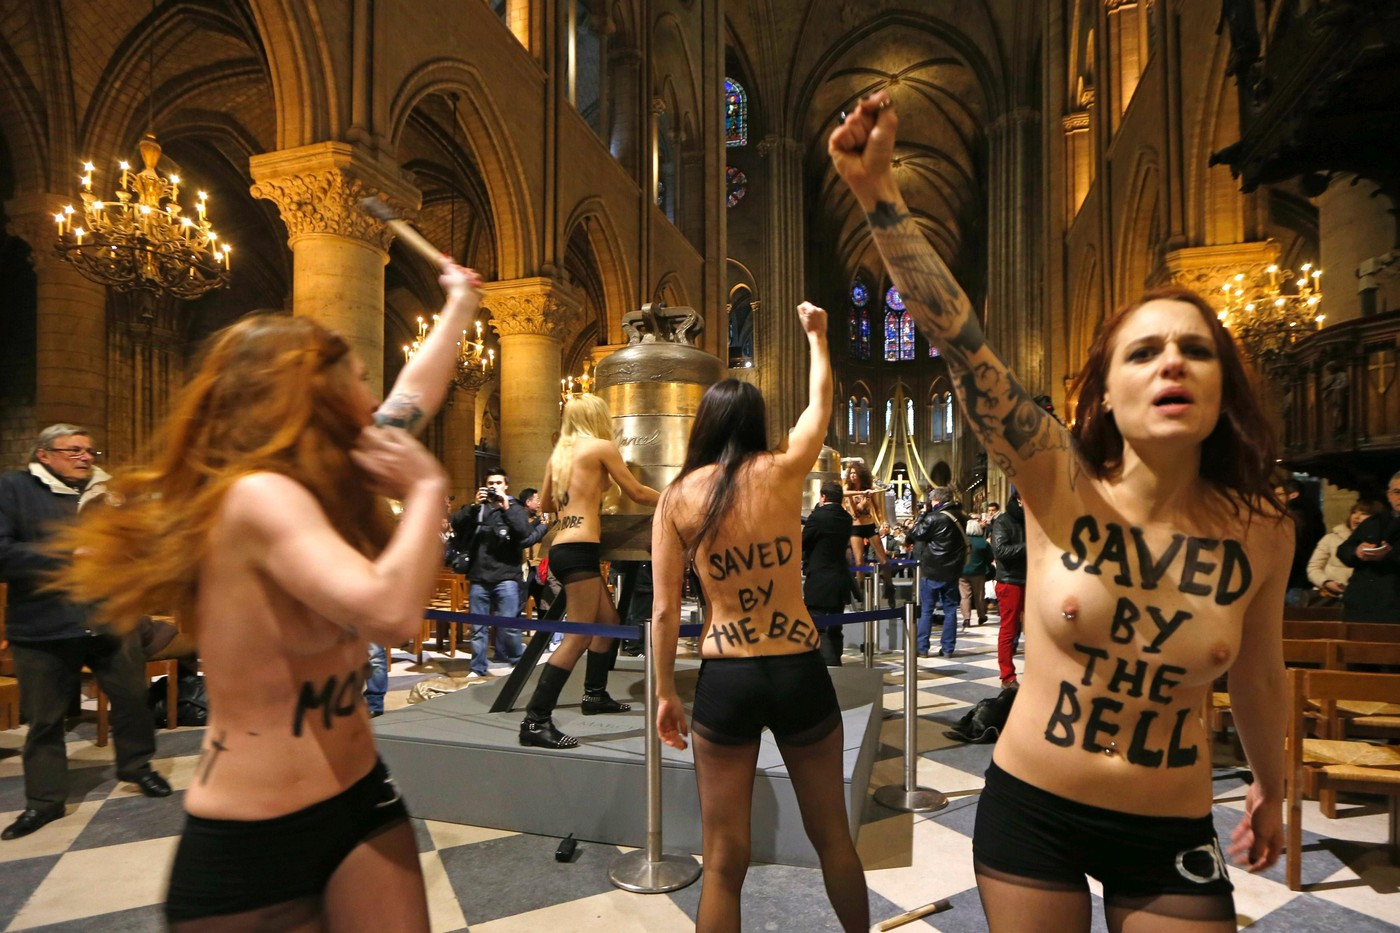 Nude notre dame girls — img 10